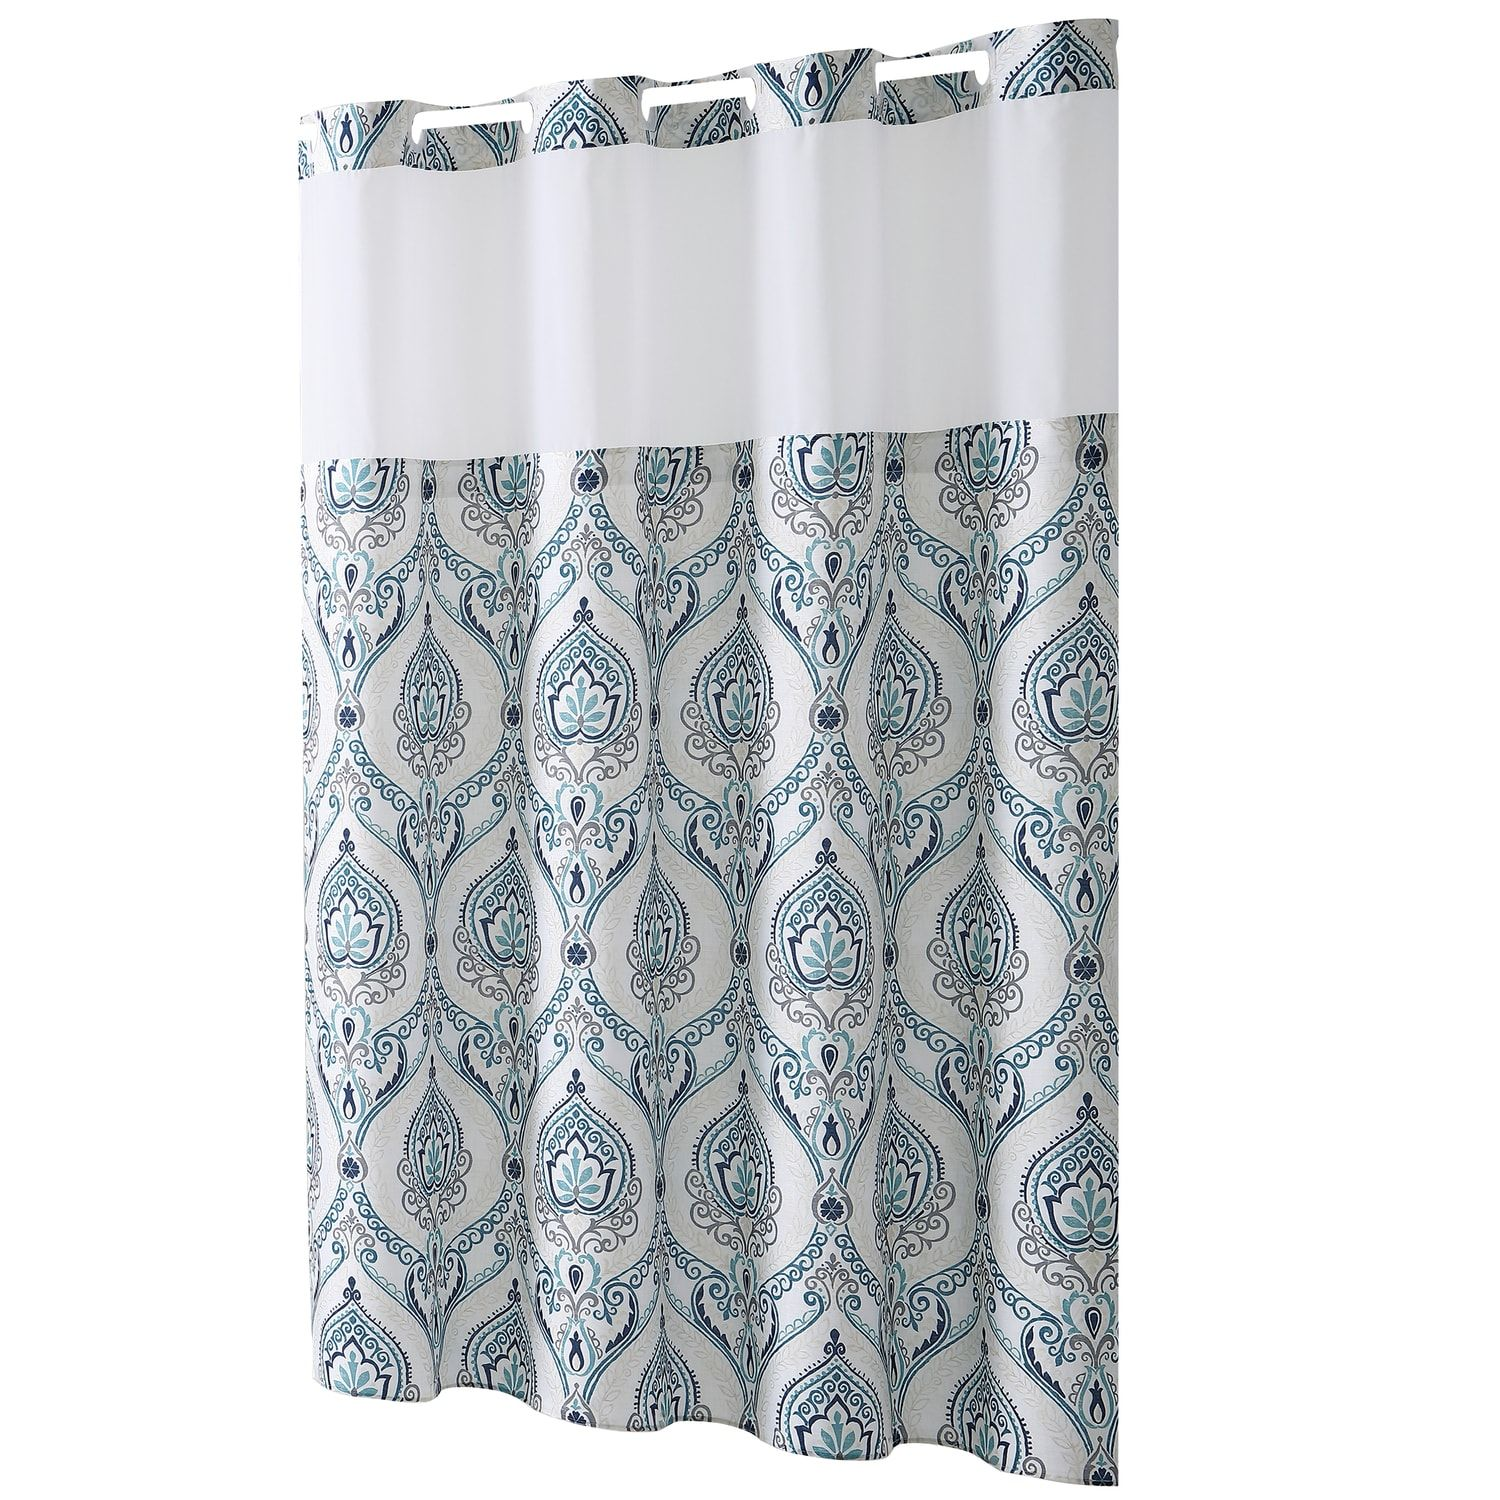 Hookless French Damask Print Coral Shower Curtain Peva Liner Damask Print Hookles Printed Shower Curtain Hookless Shower Curtain Shower Curtains Walmart